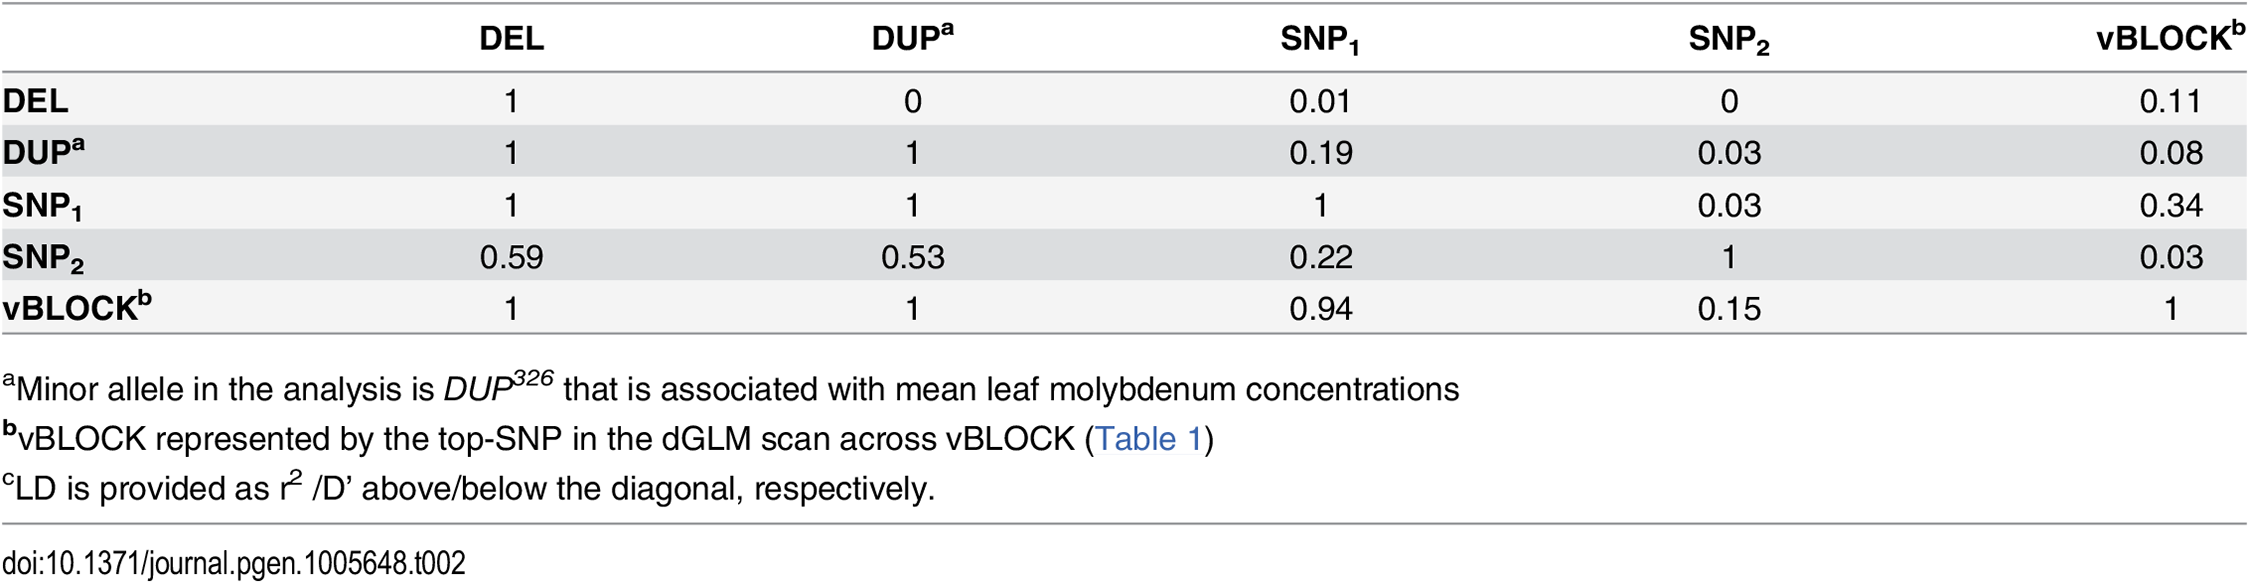 "LD<em class=""ref""><sup>c</sup></em> between the loci altering mean leaf molybdenum concentrations."